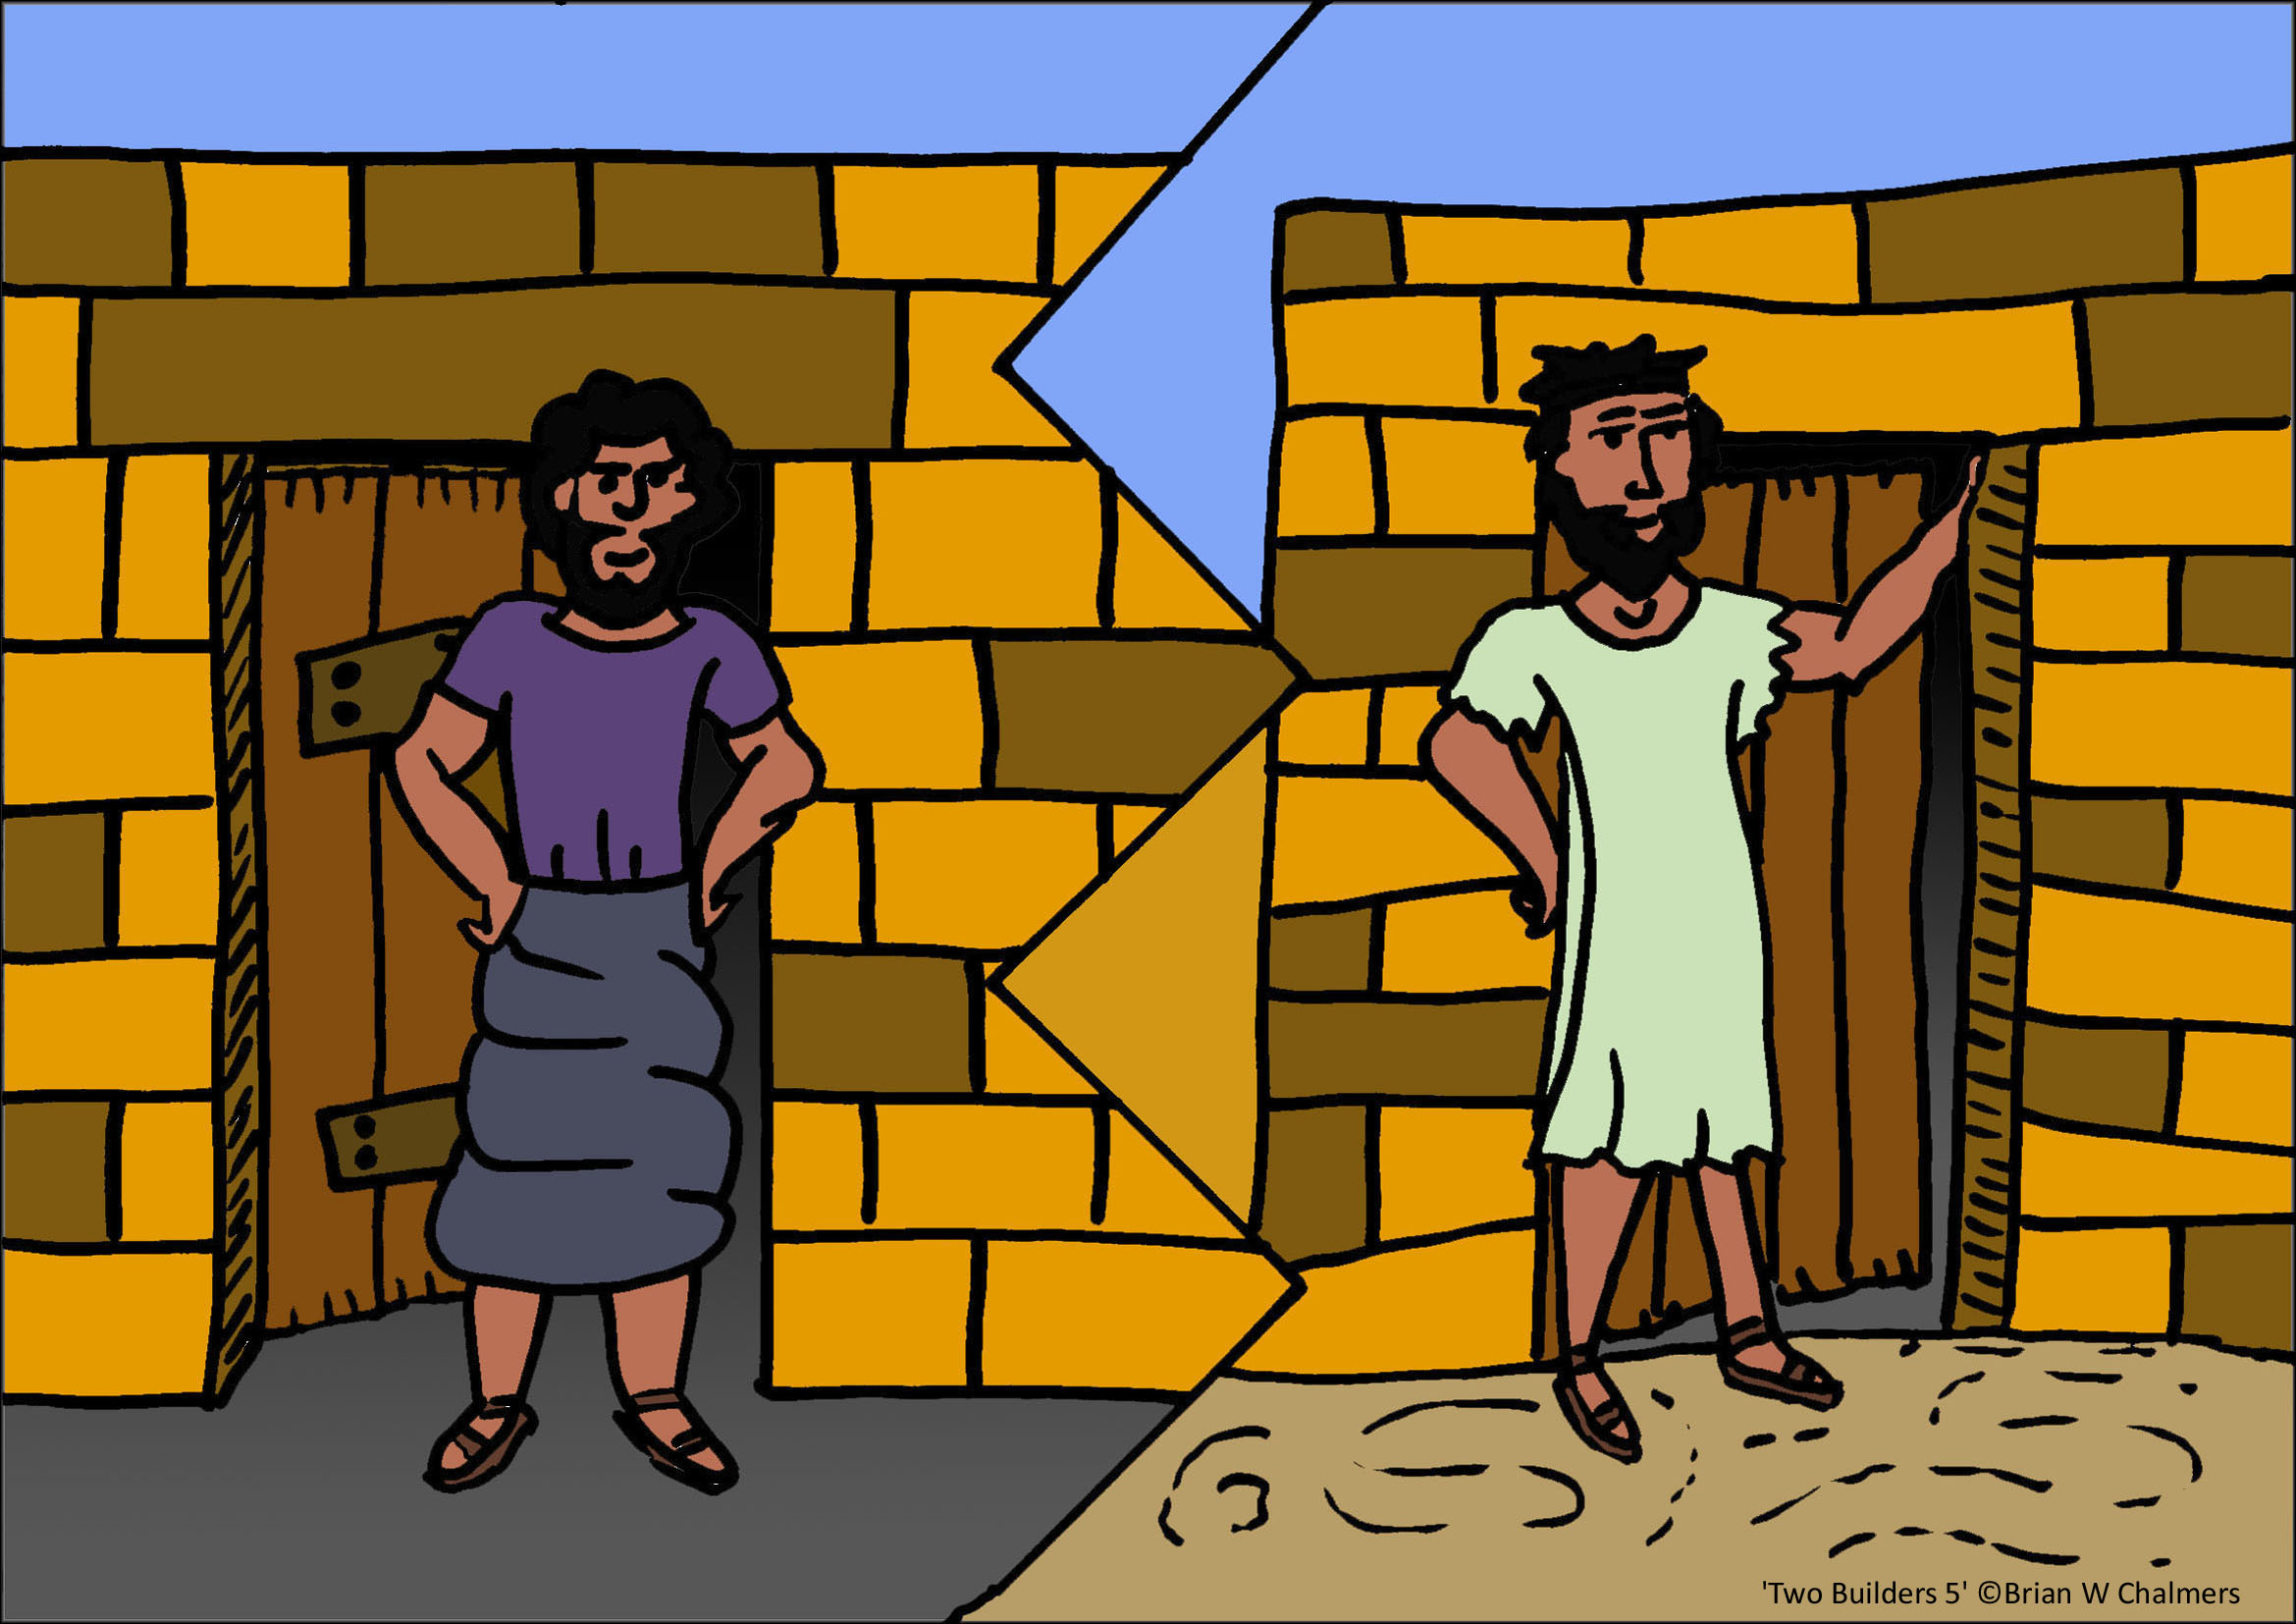 Wise man built his house upon the rock sermon -  Build His House Upon Sand The Wise And Foolish Man Houses